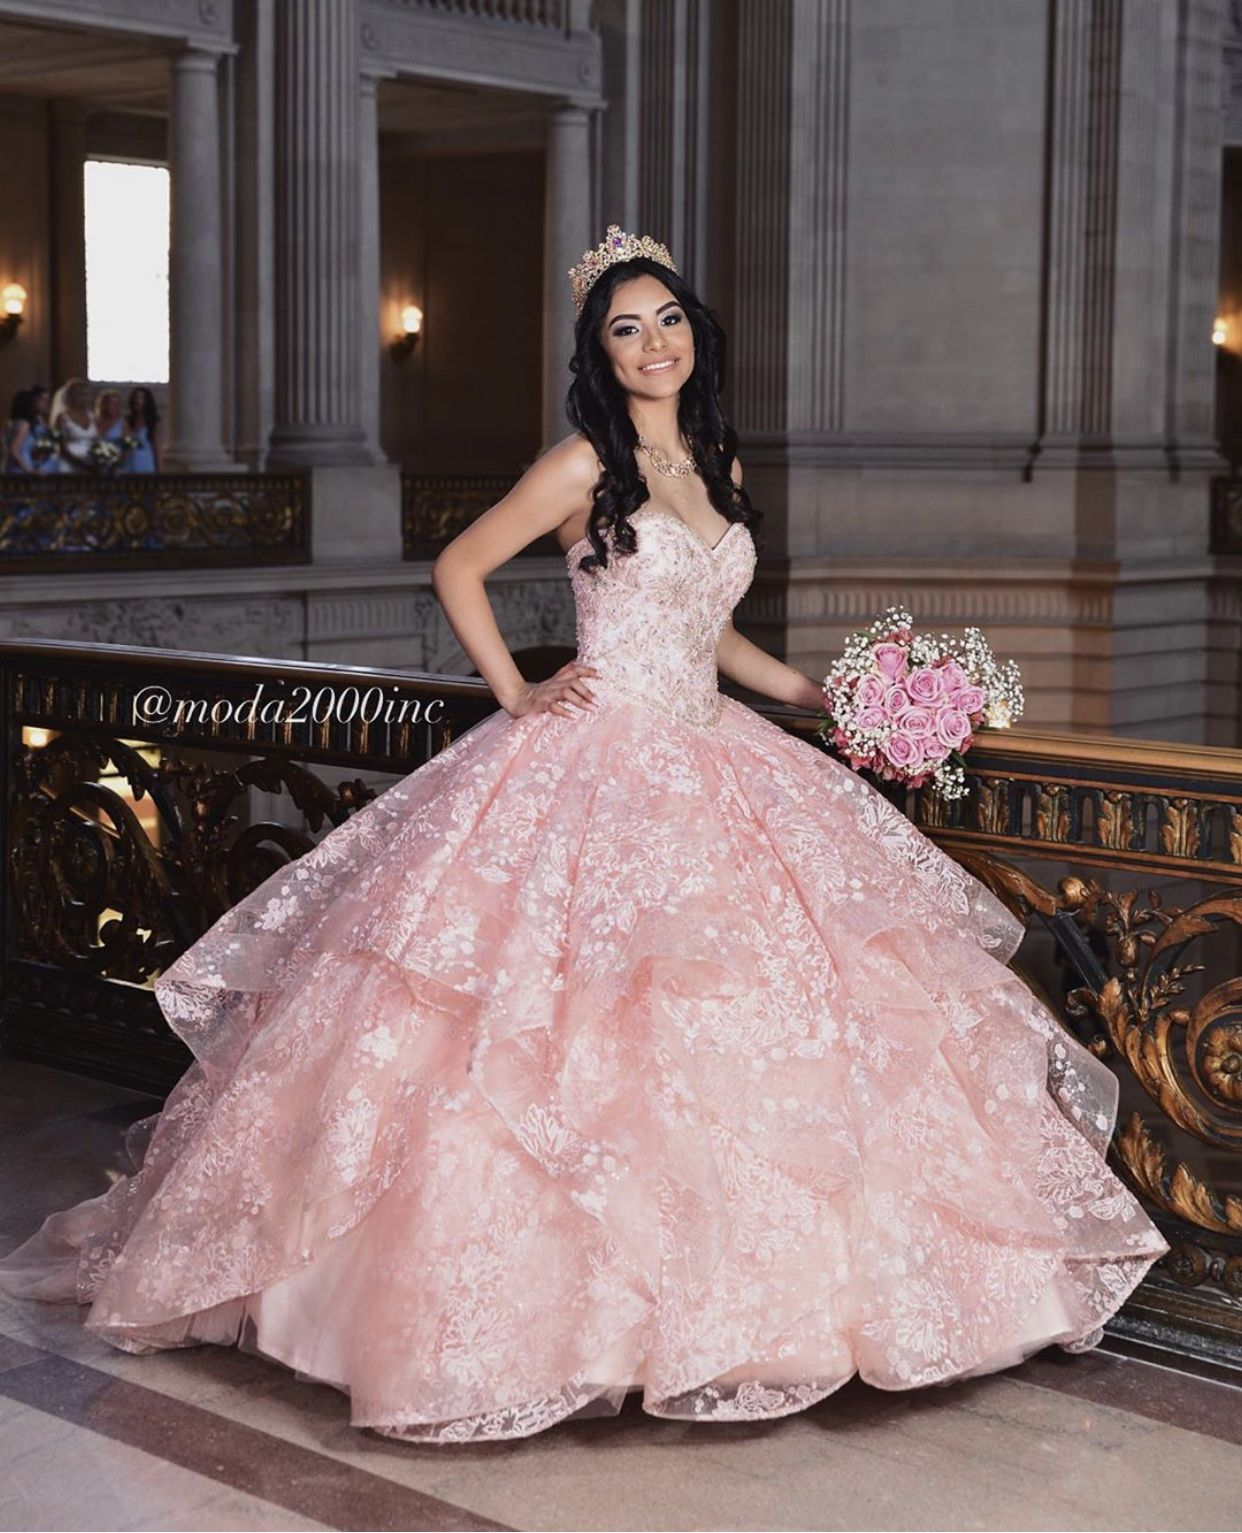 Floral Pink Ruffled Quinceanera Dress Quince Dresses Quinceanera Dresses Pink Quinceanera Dresses [ 1533 x 1242 Pixel ]